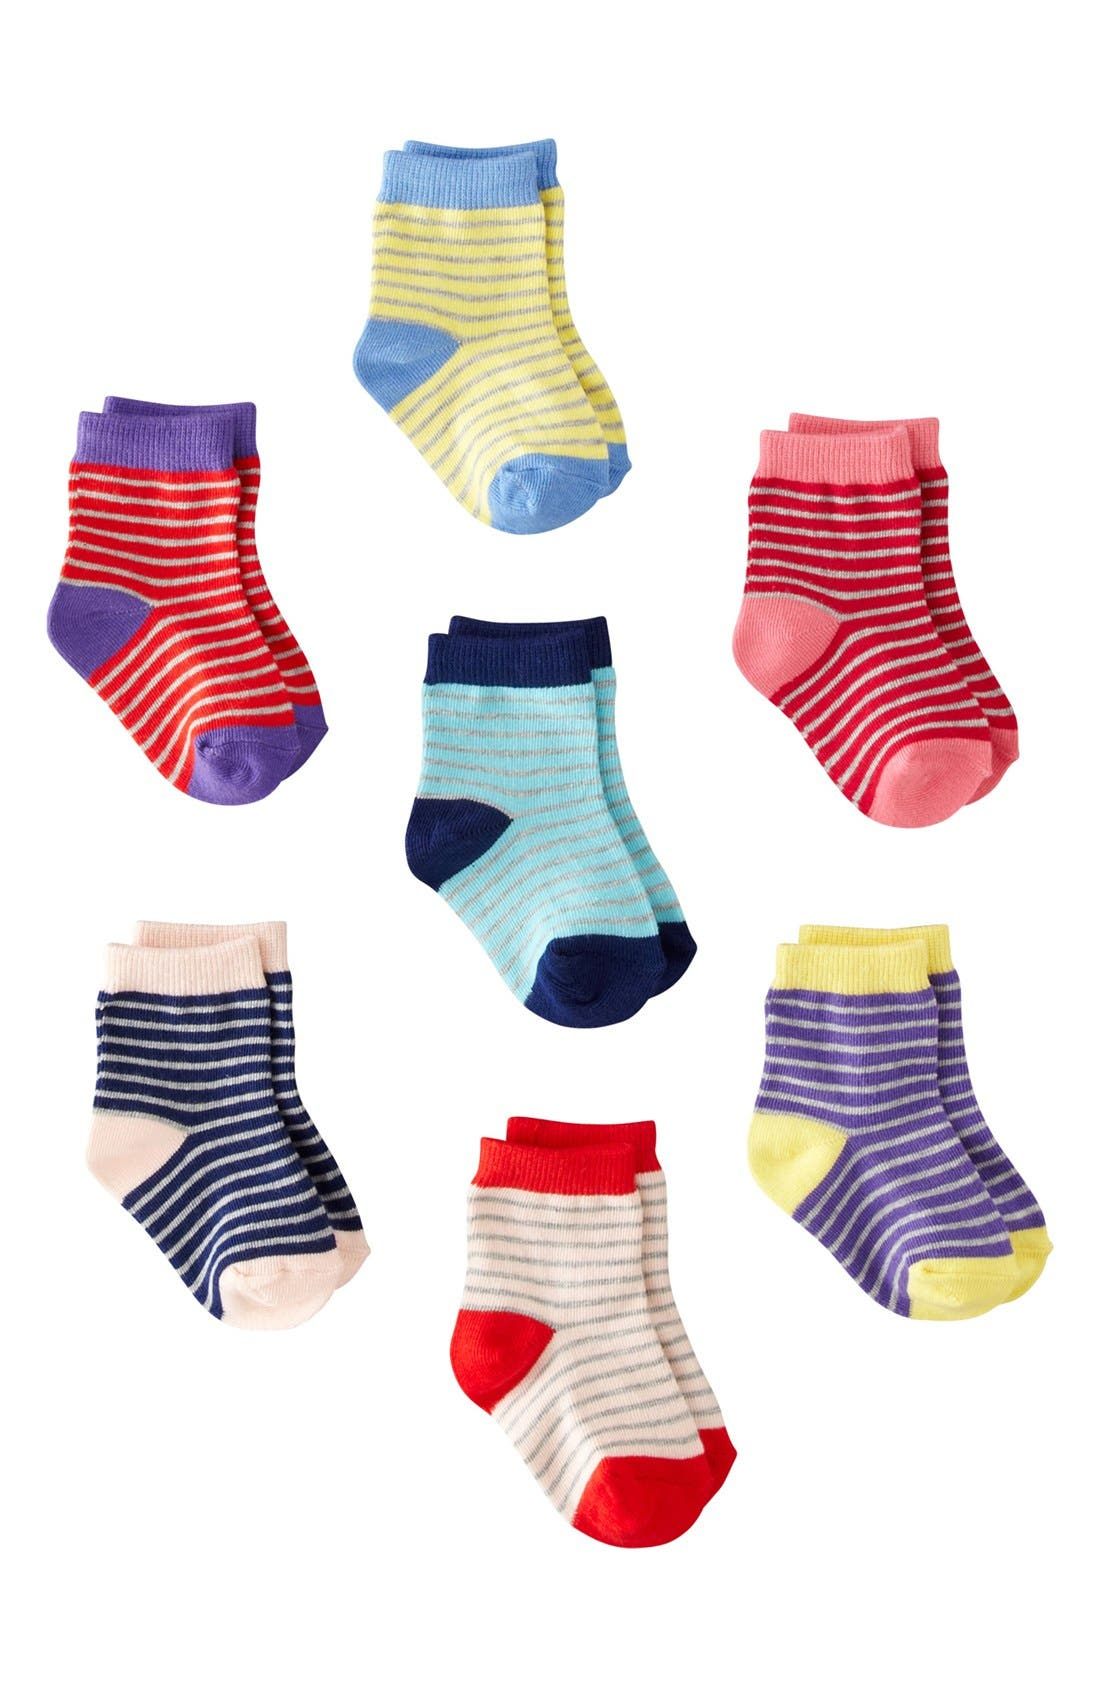 Alternate Image 1 Selected - Mini Boden Socks (7-Pack) (Baby)